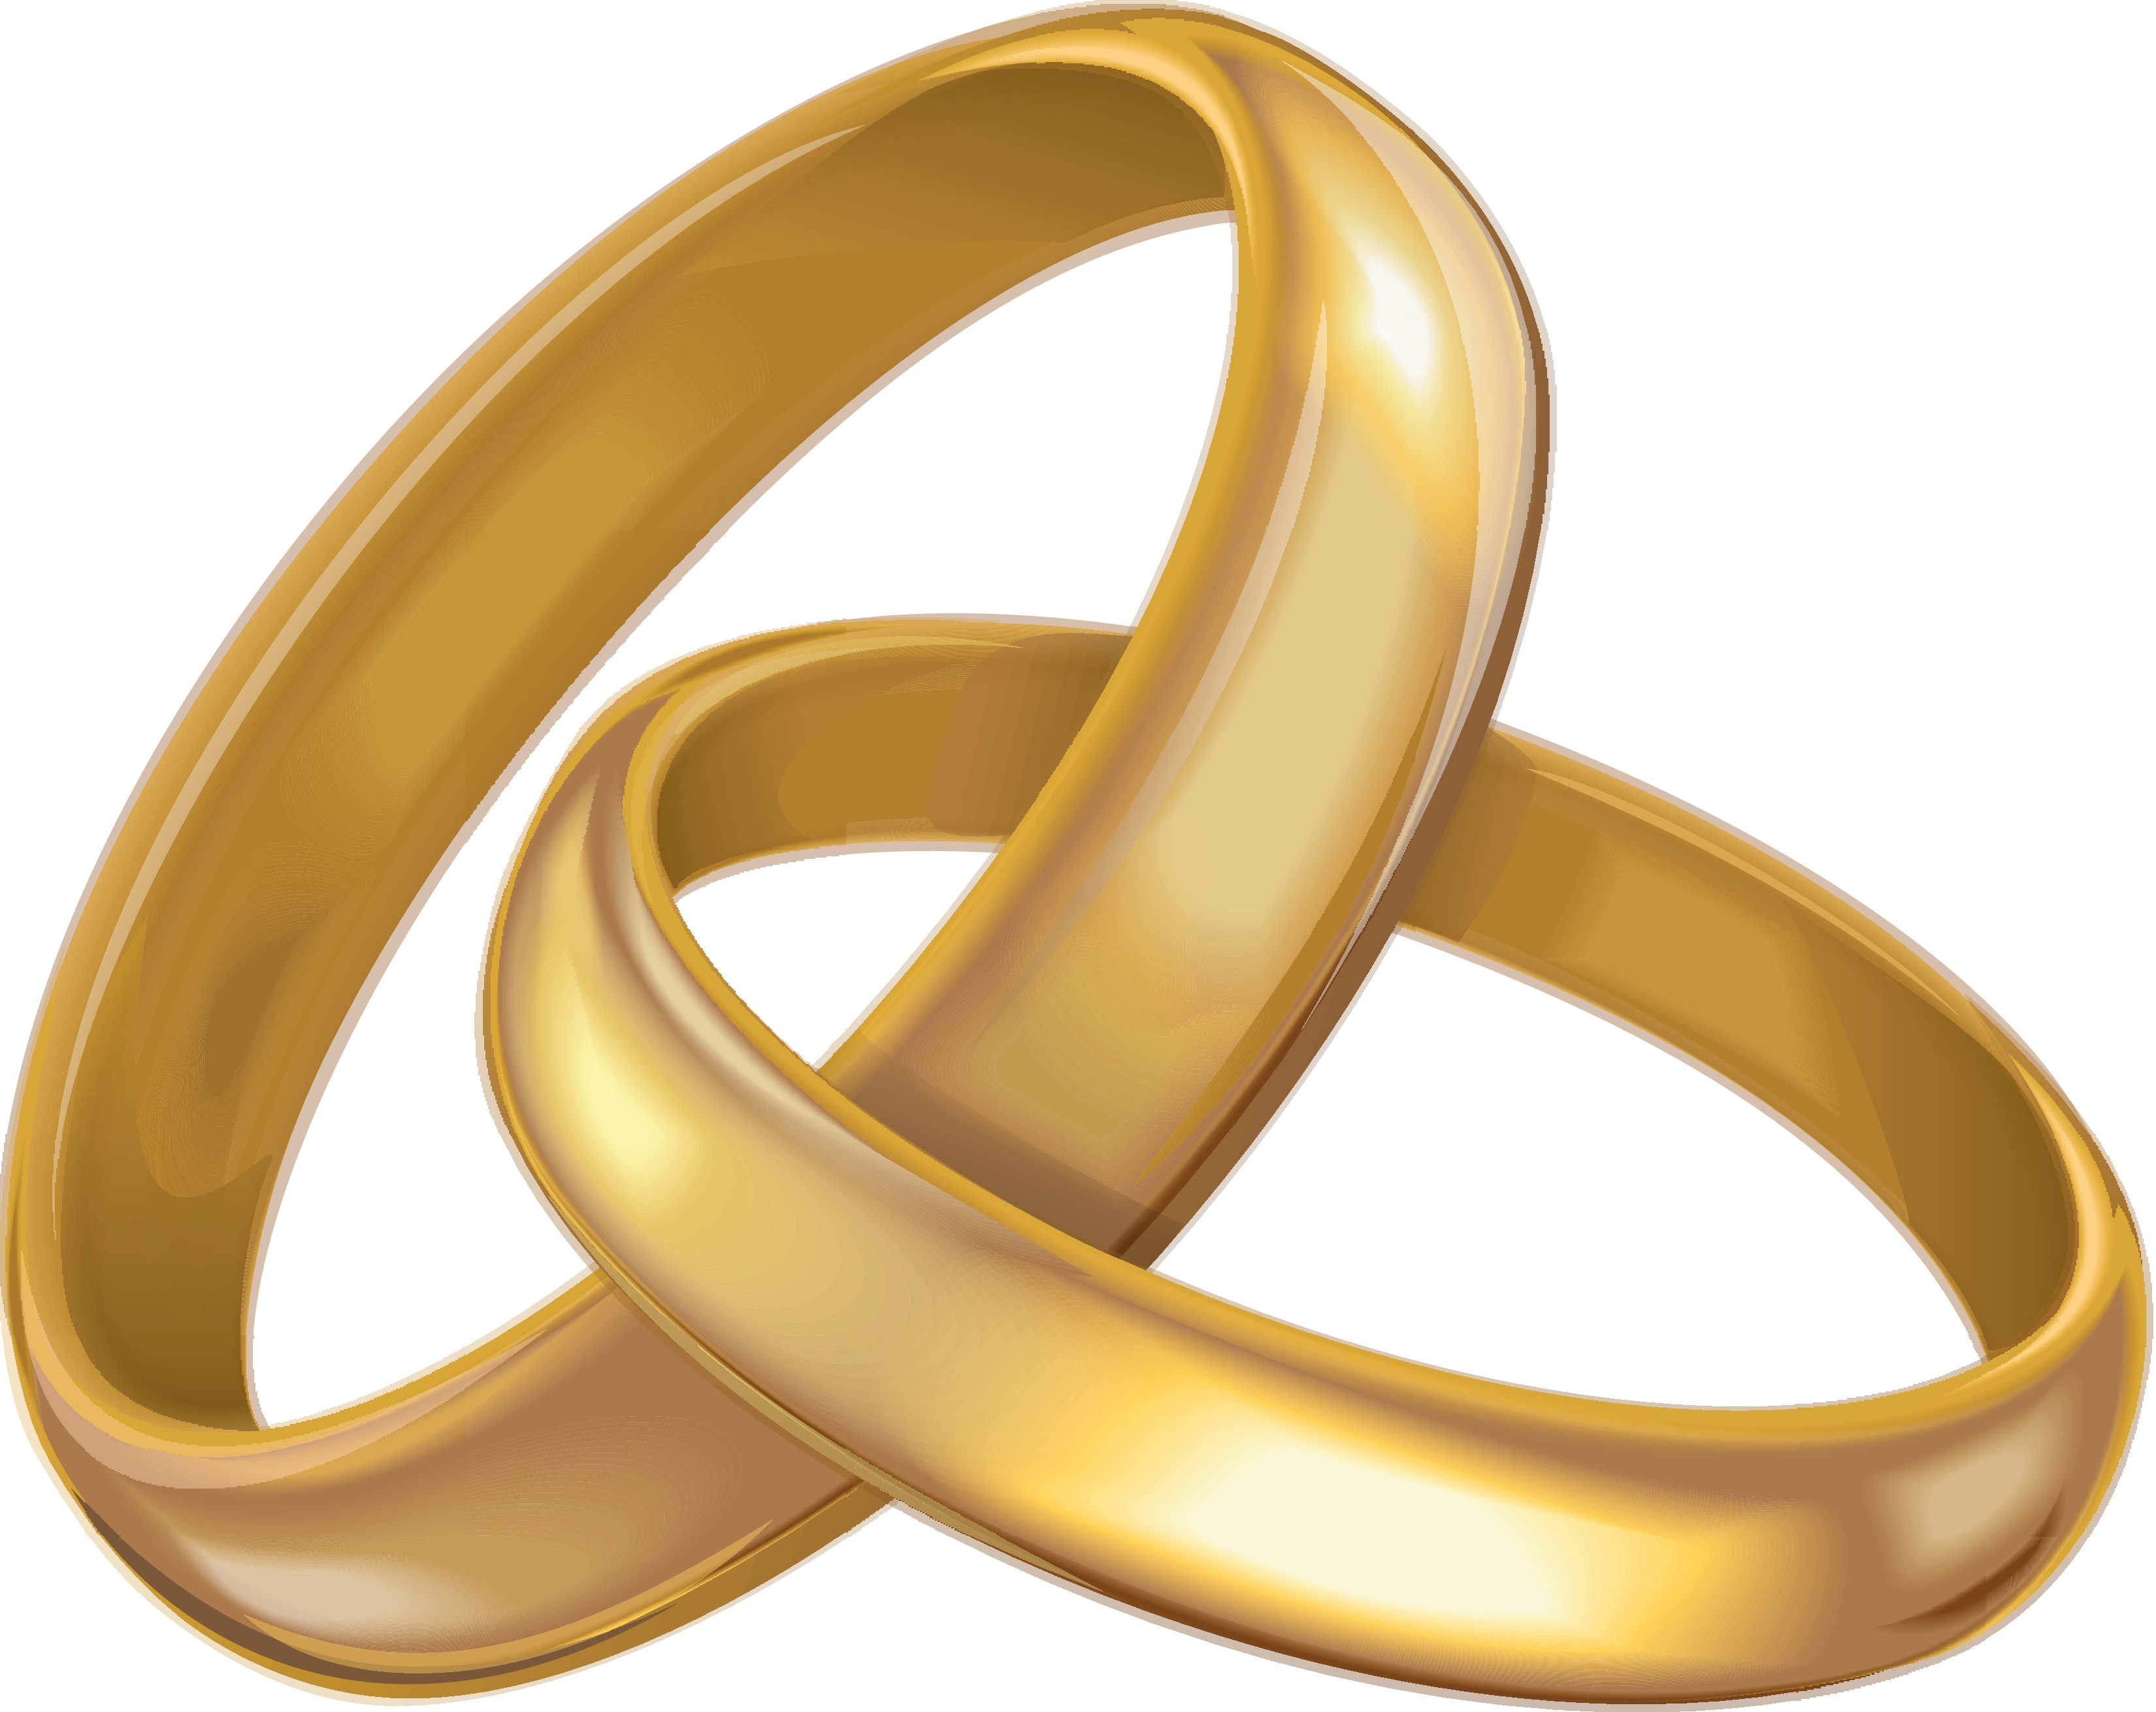 Free wedding ring clipart 6 .-Free wedding ring clipart 6 .-9